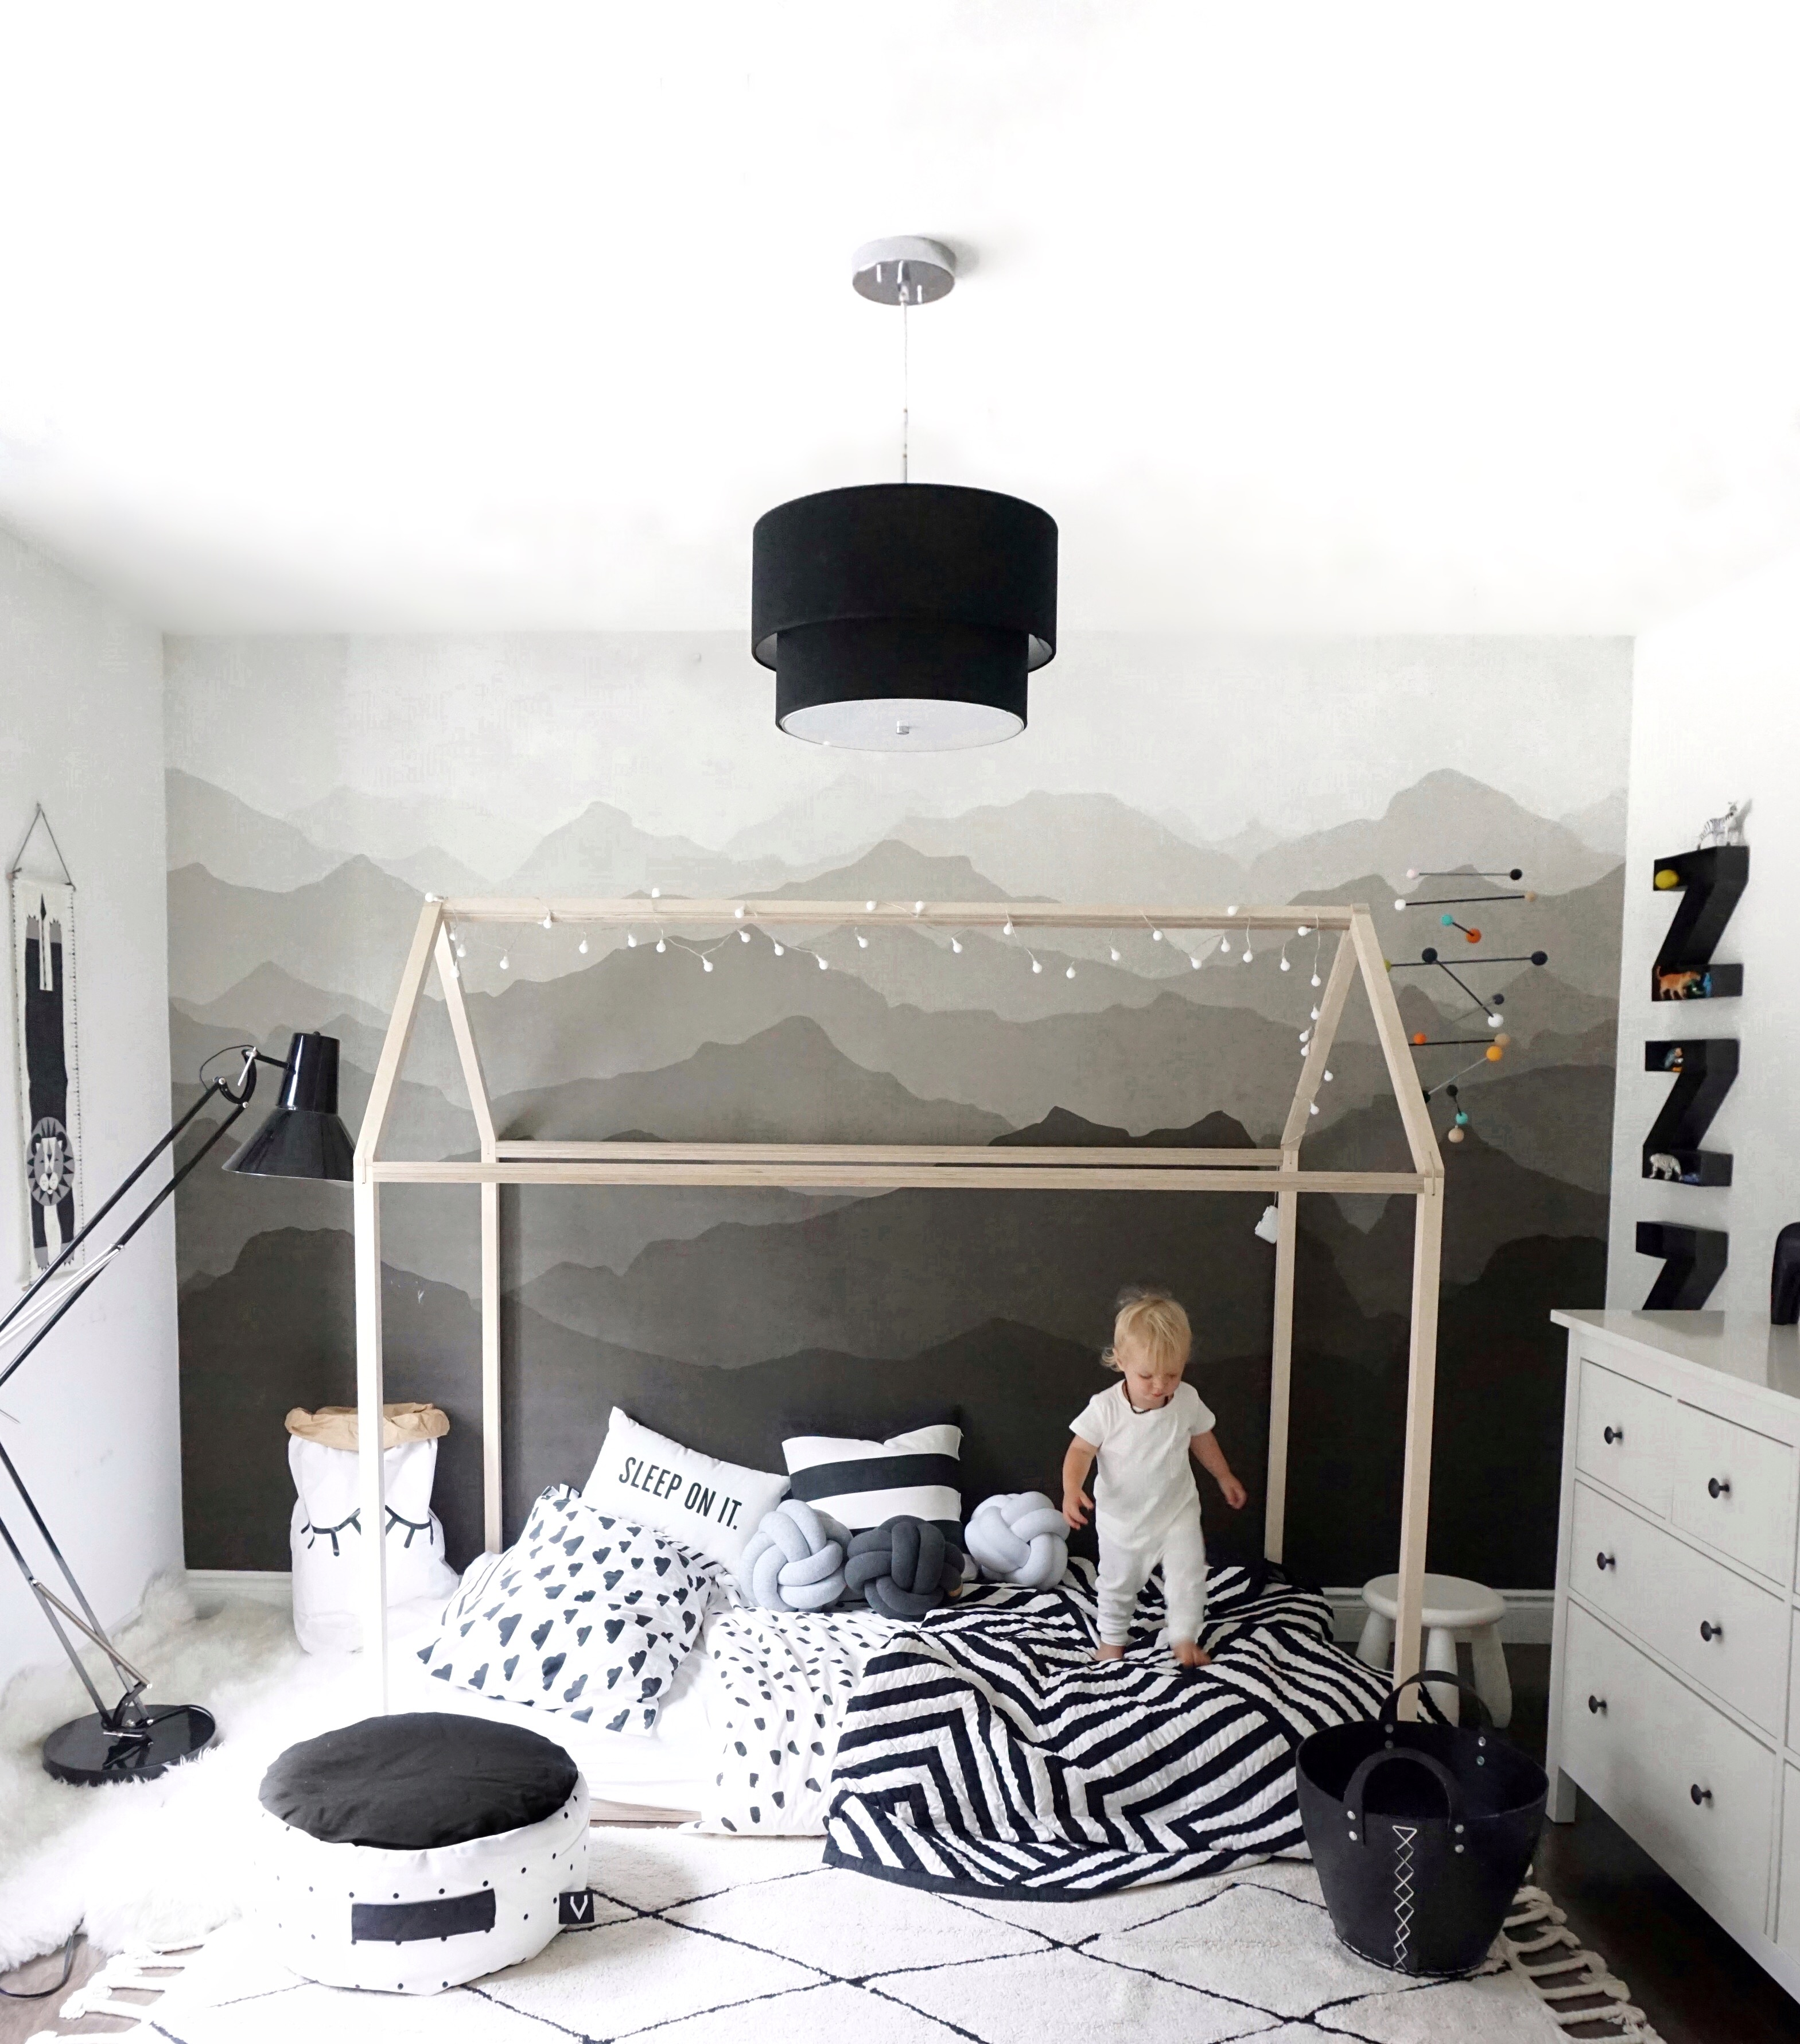 Monochrome Kidu0027s Room Makeover With A New House Bed | Ericashawandcompany